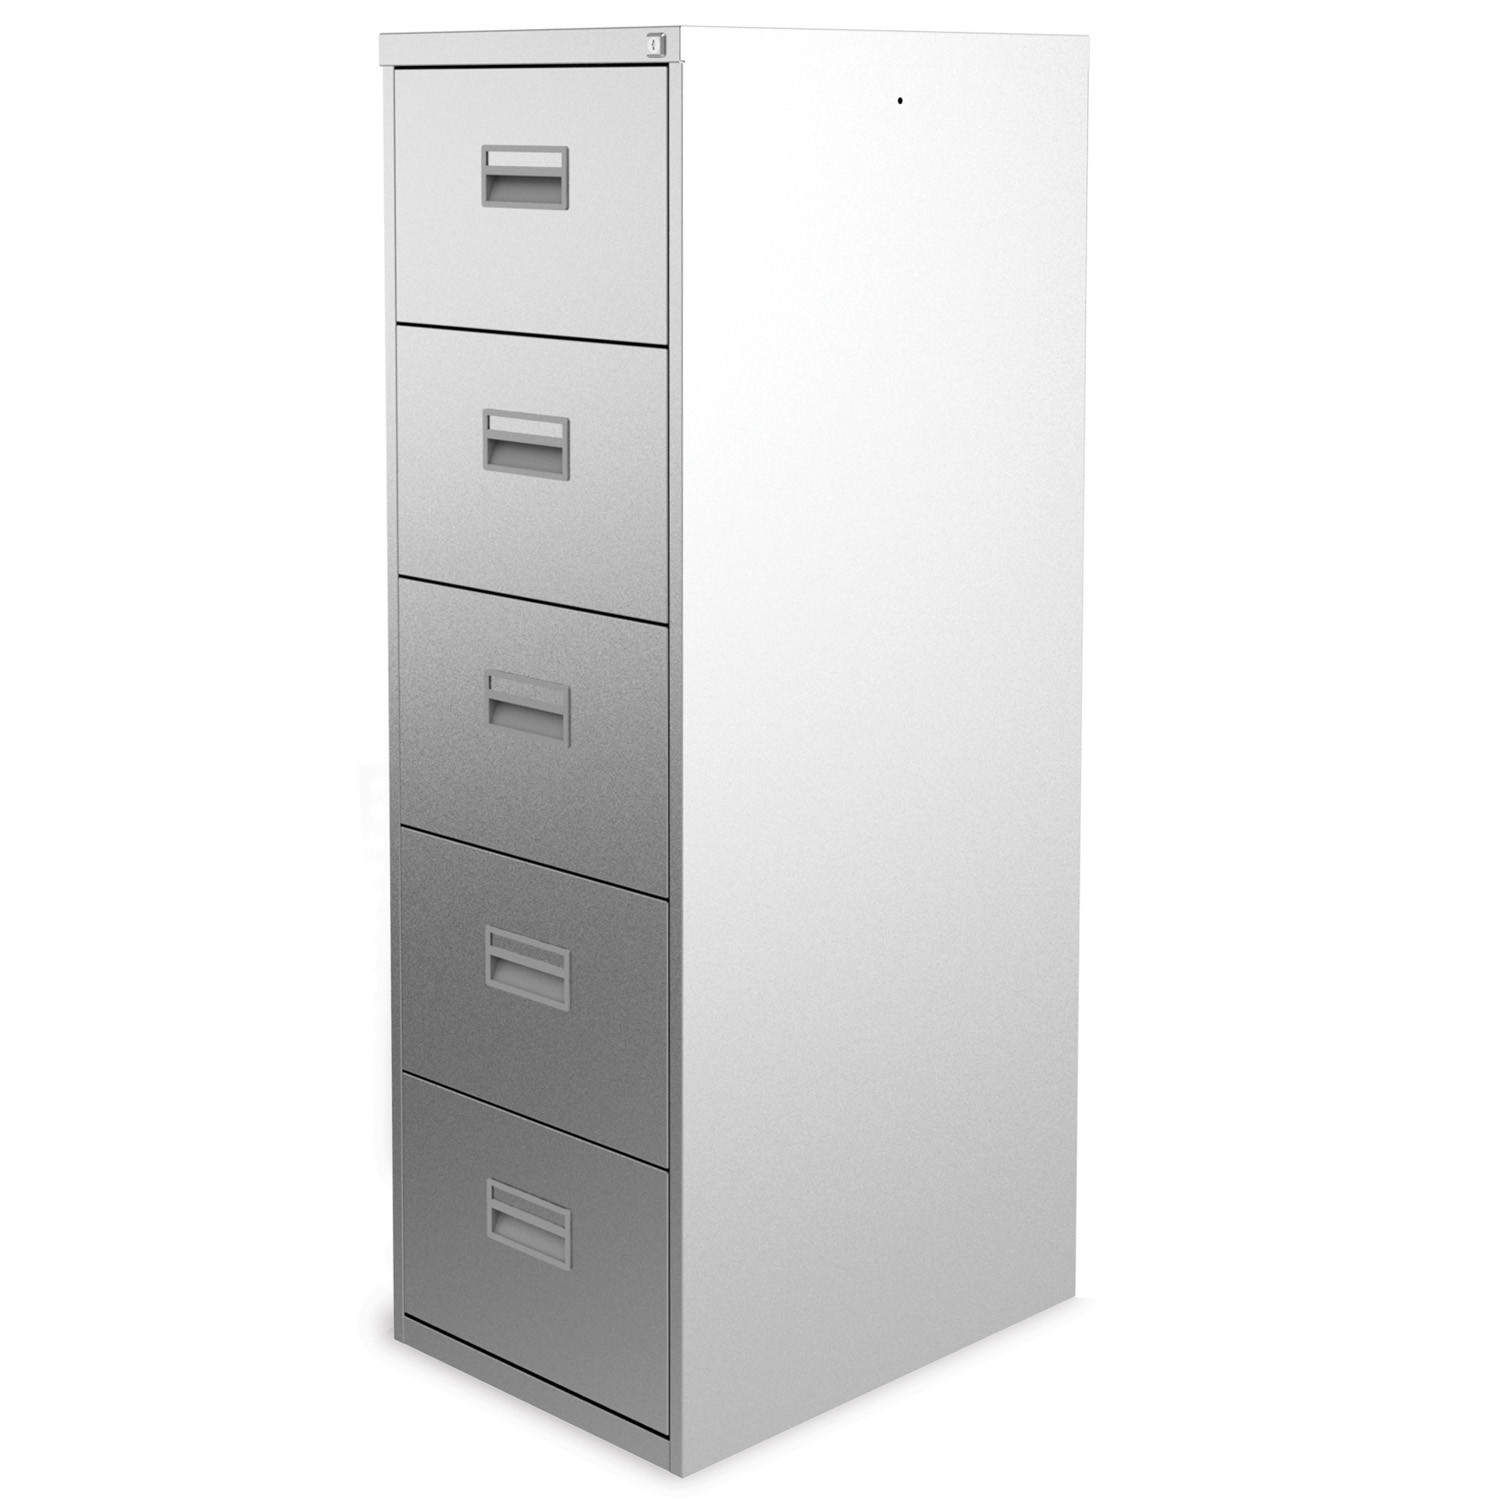 A3 Jumbo & 5 Drawer Heavy Duty Filing cabinets